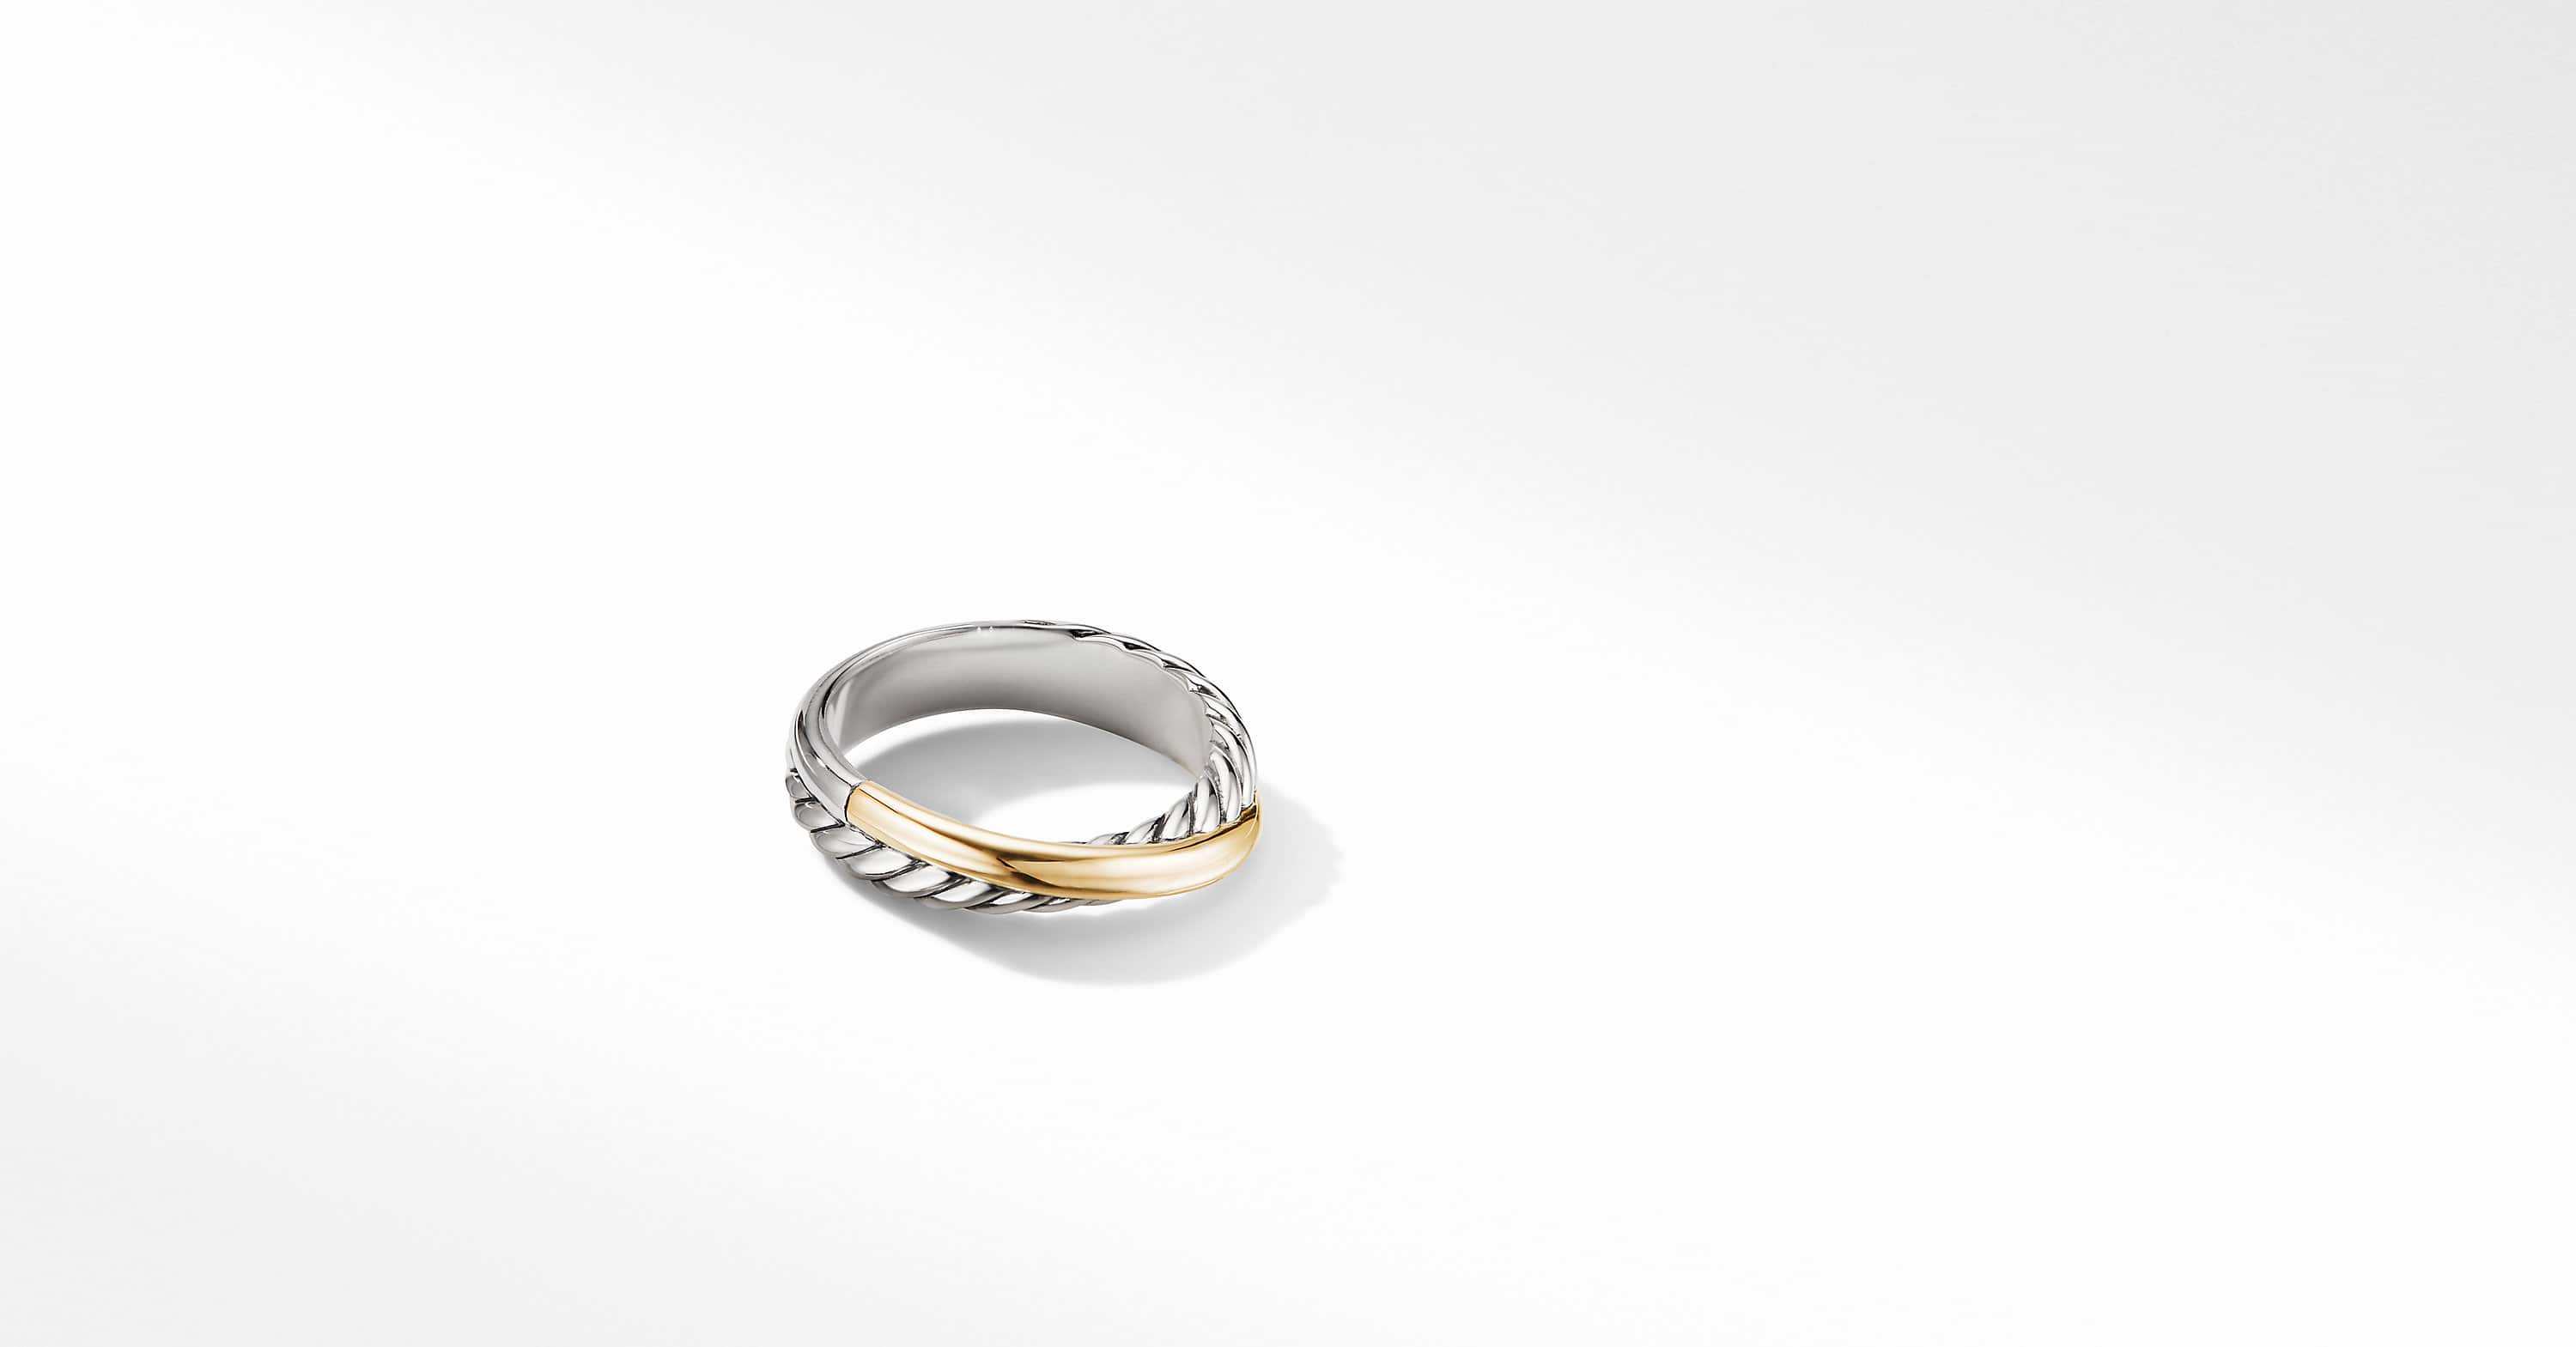 The Crossover Collection Ring with 18K Yellow Gold